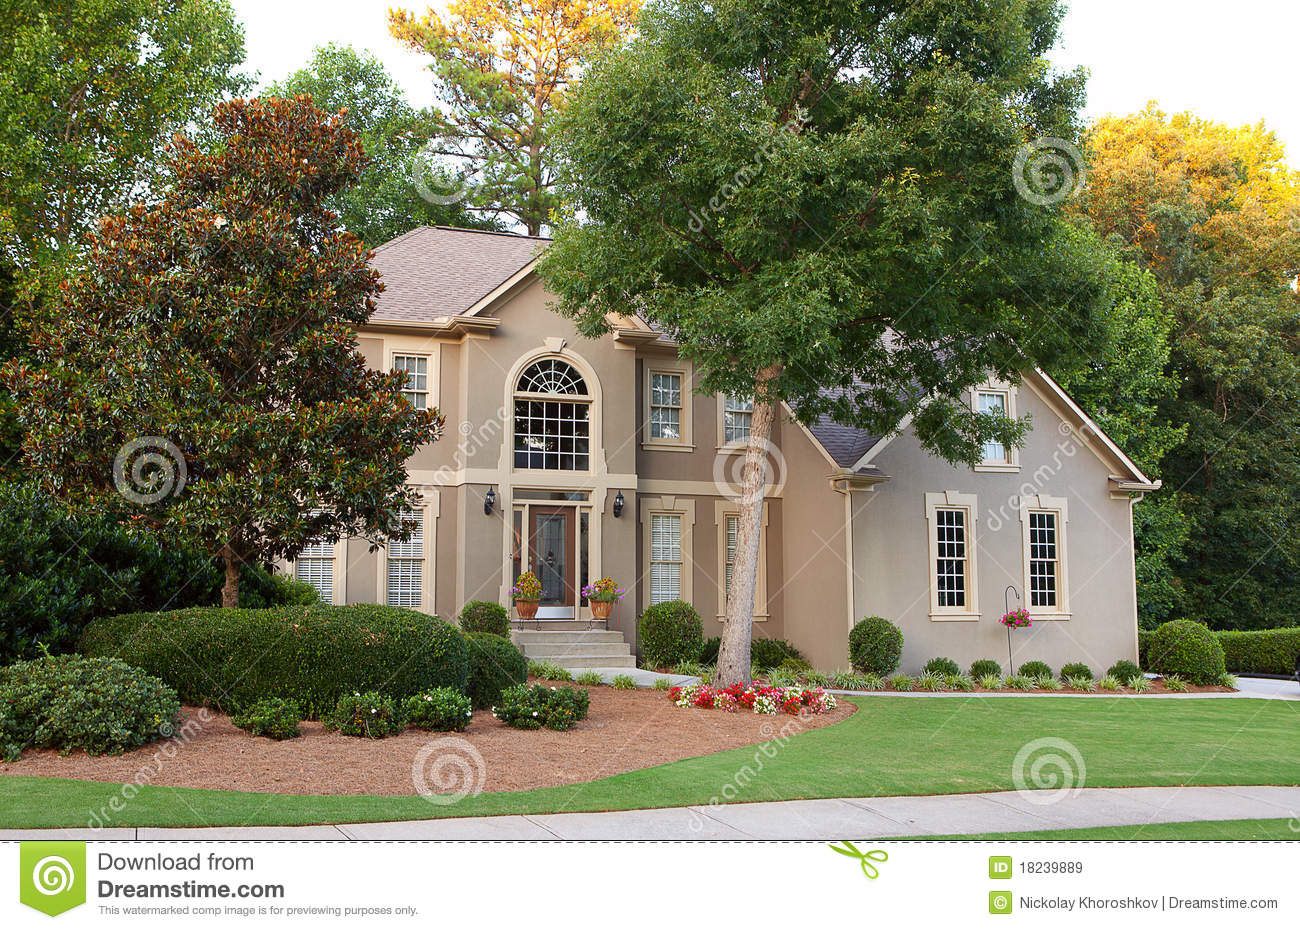 Typical american house royalty free stock images image - Tipica casa americana ...